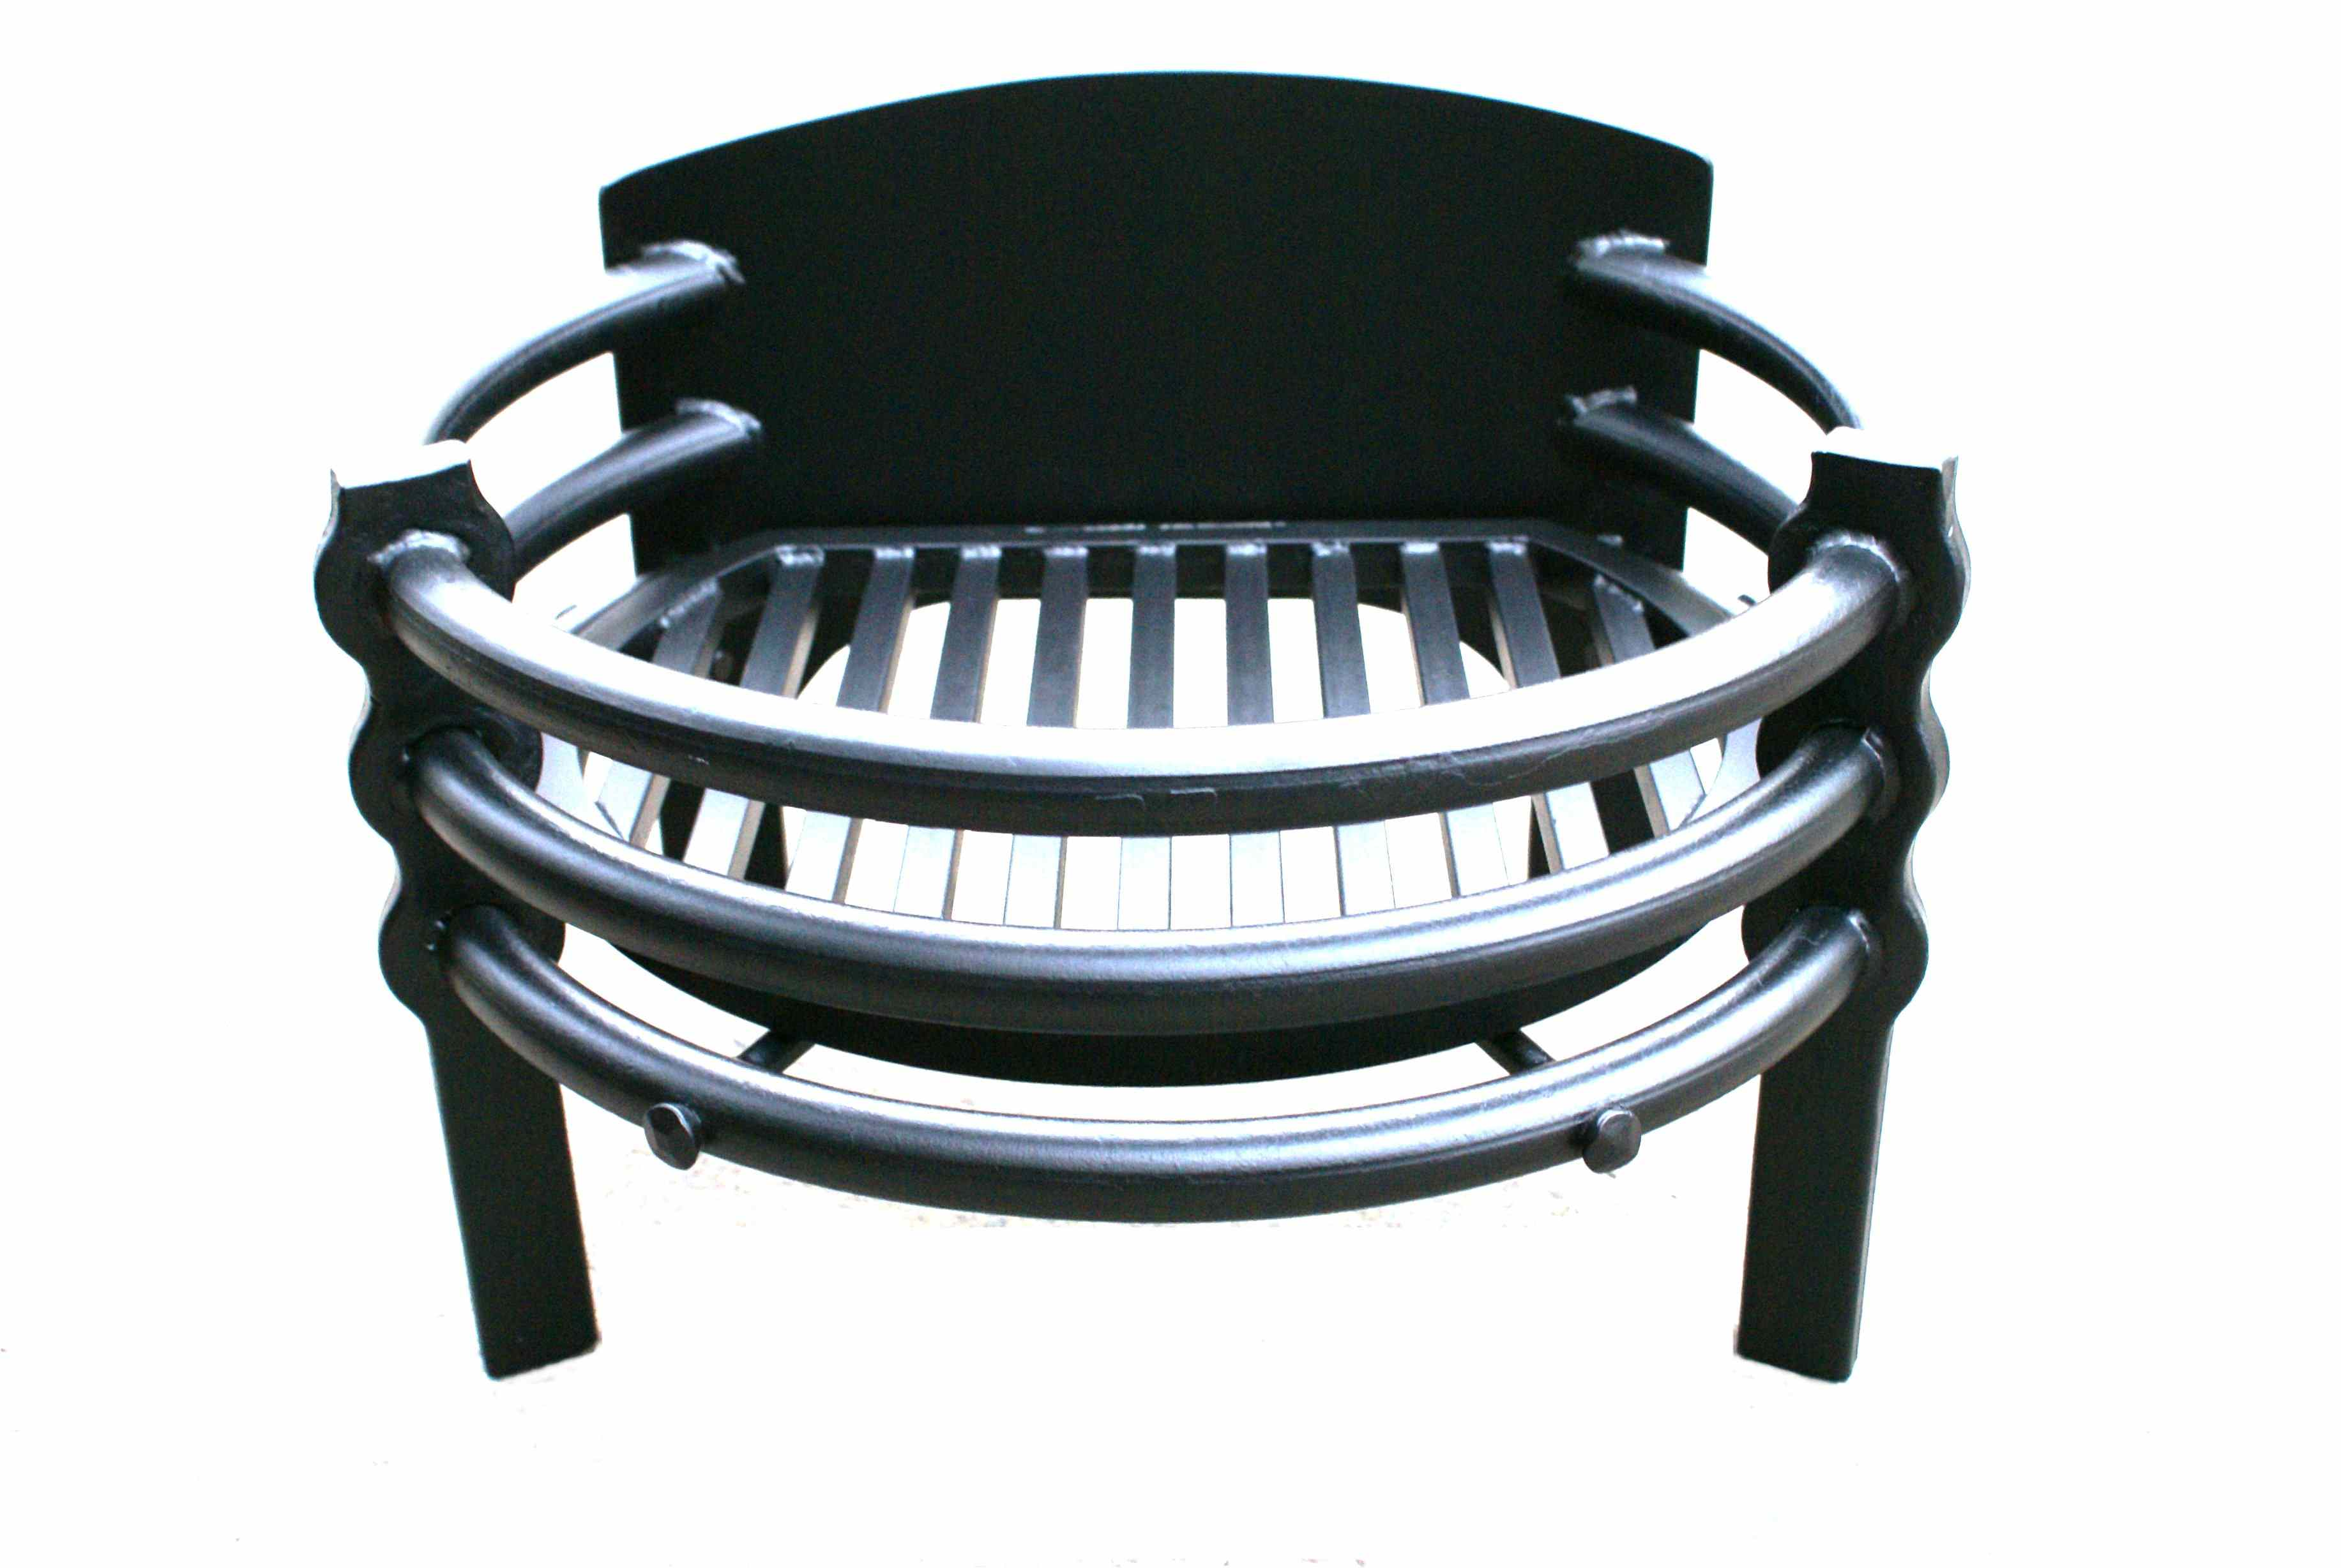 fire furniture  burrows lea forge  hand forged ironwork - contemporary designed free standing fire basket